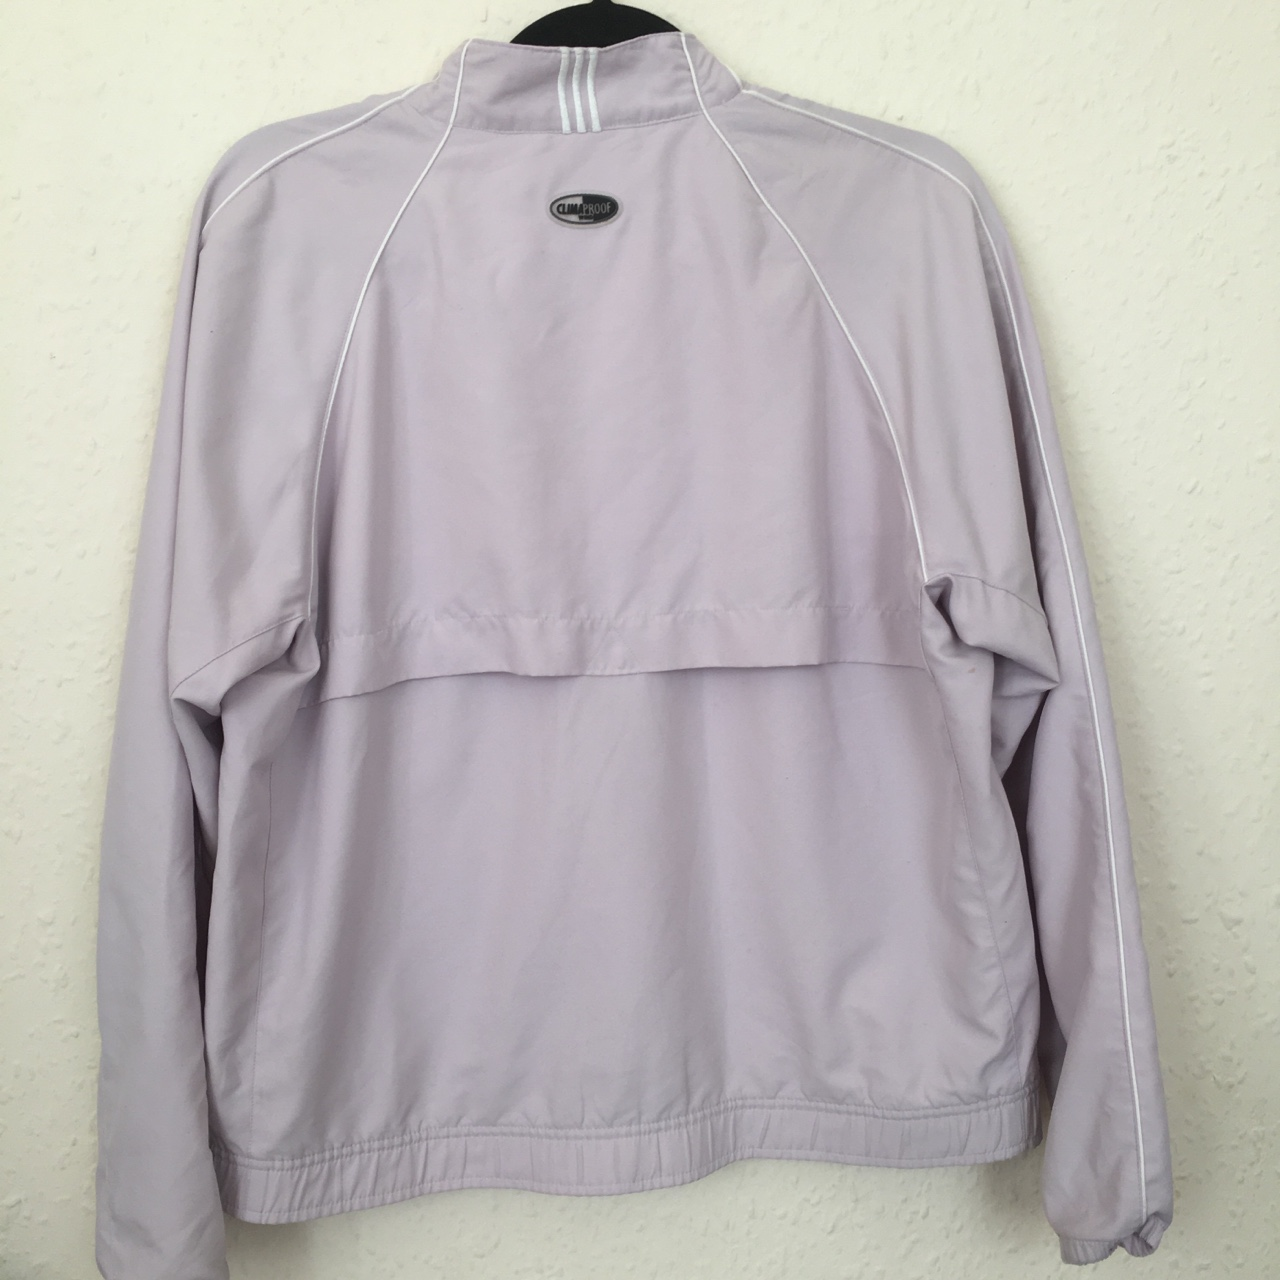 Adidas pink lilac bomber jacket. clima proof. Depop